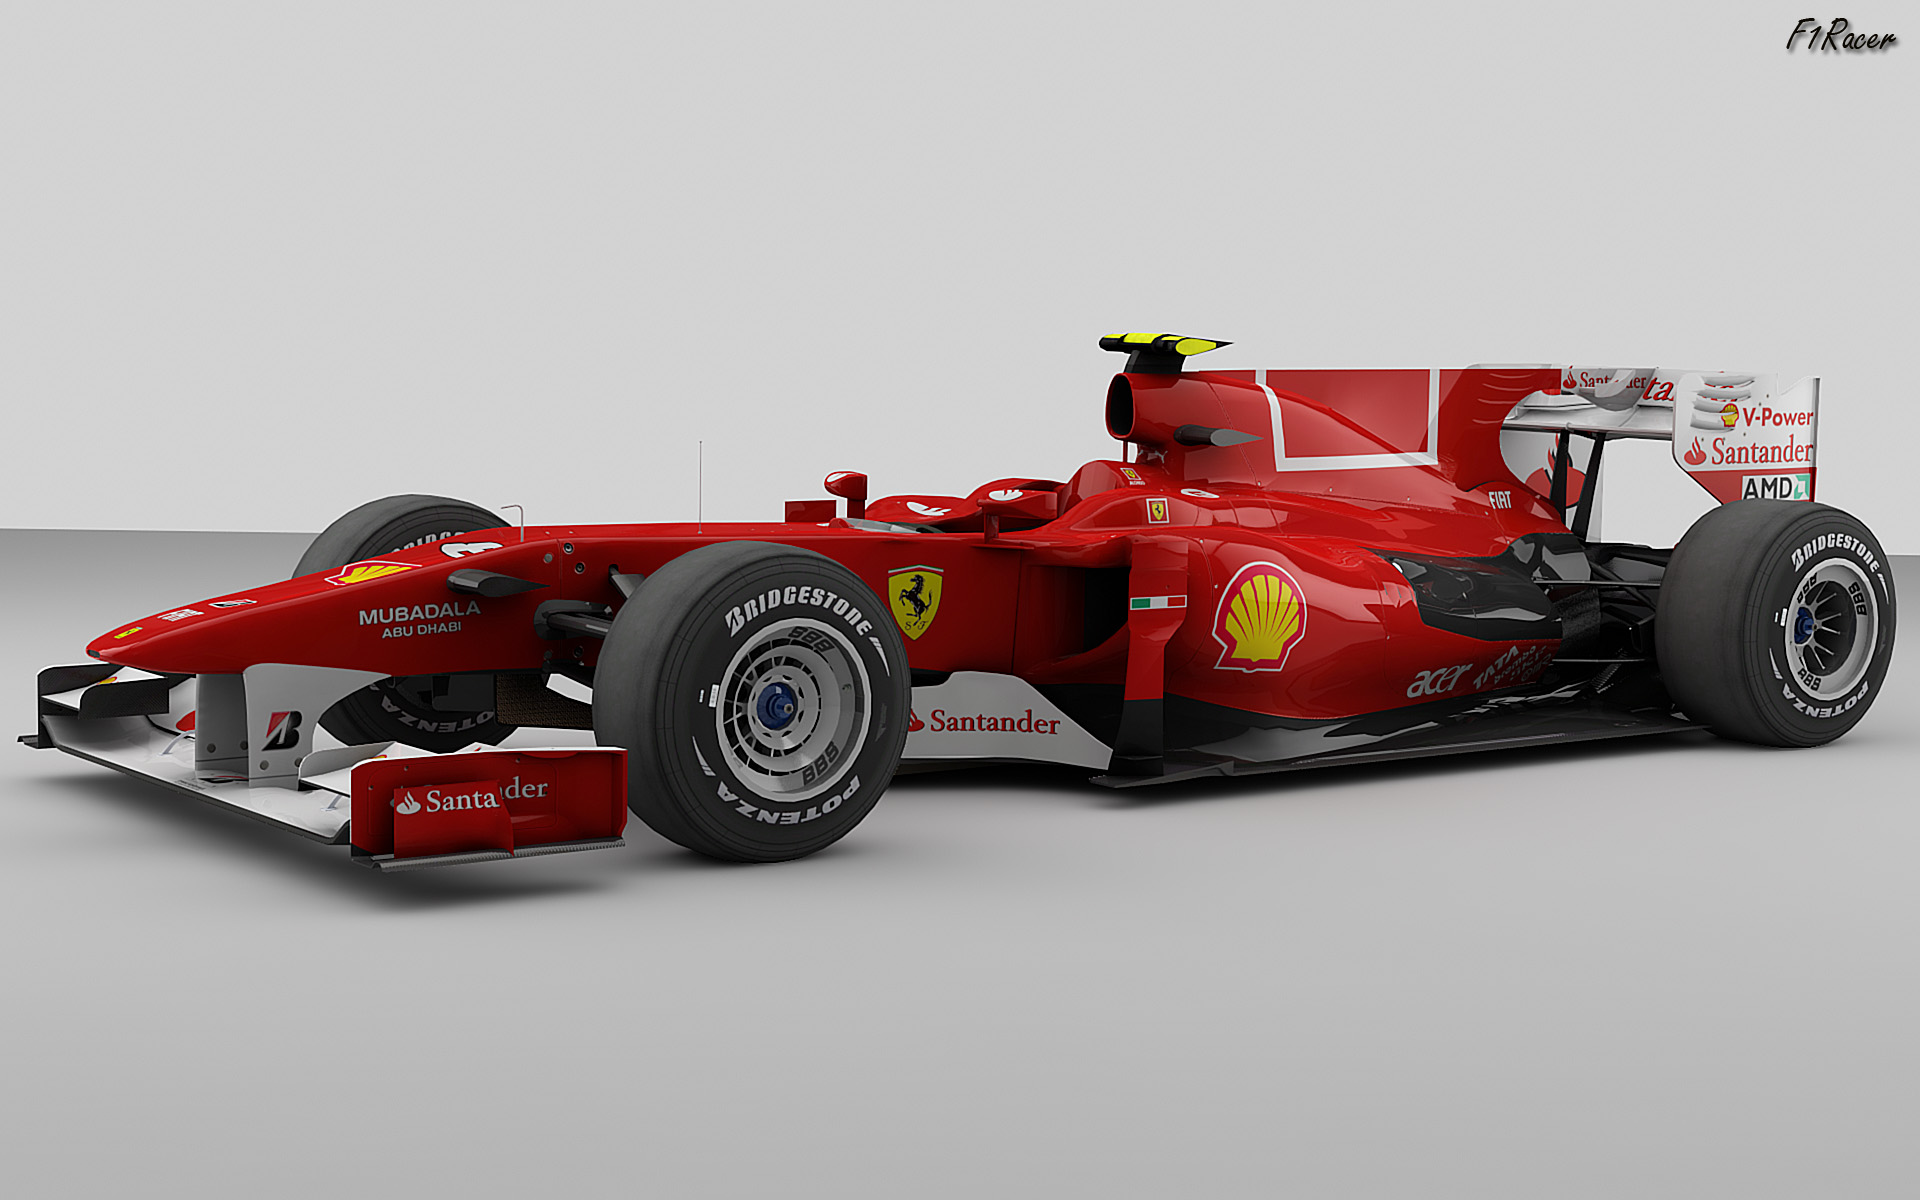 Ferrari f10 Photo and Video Review. Comments.